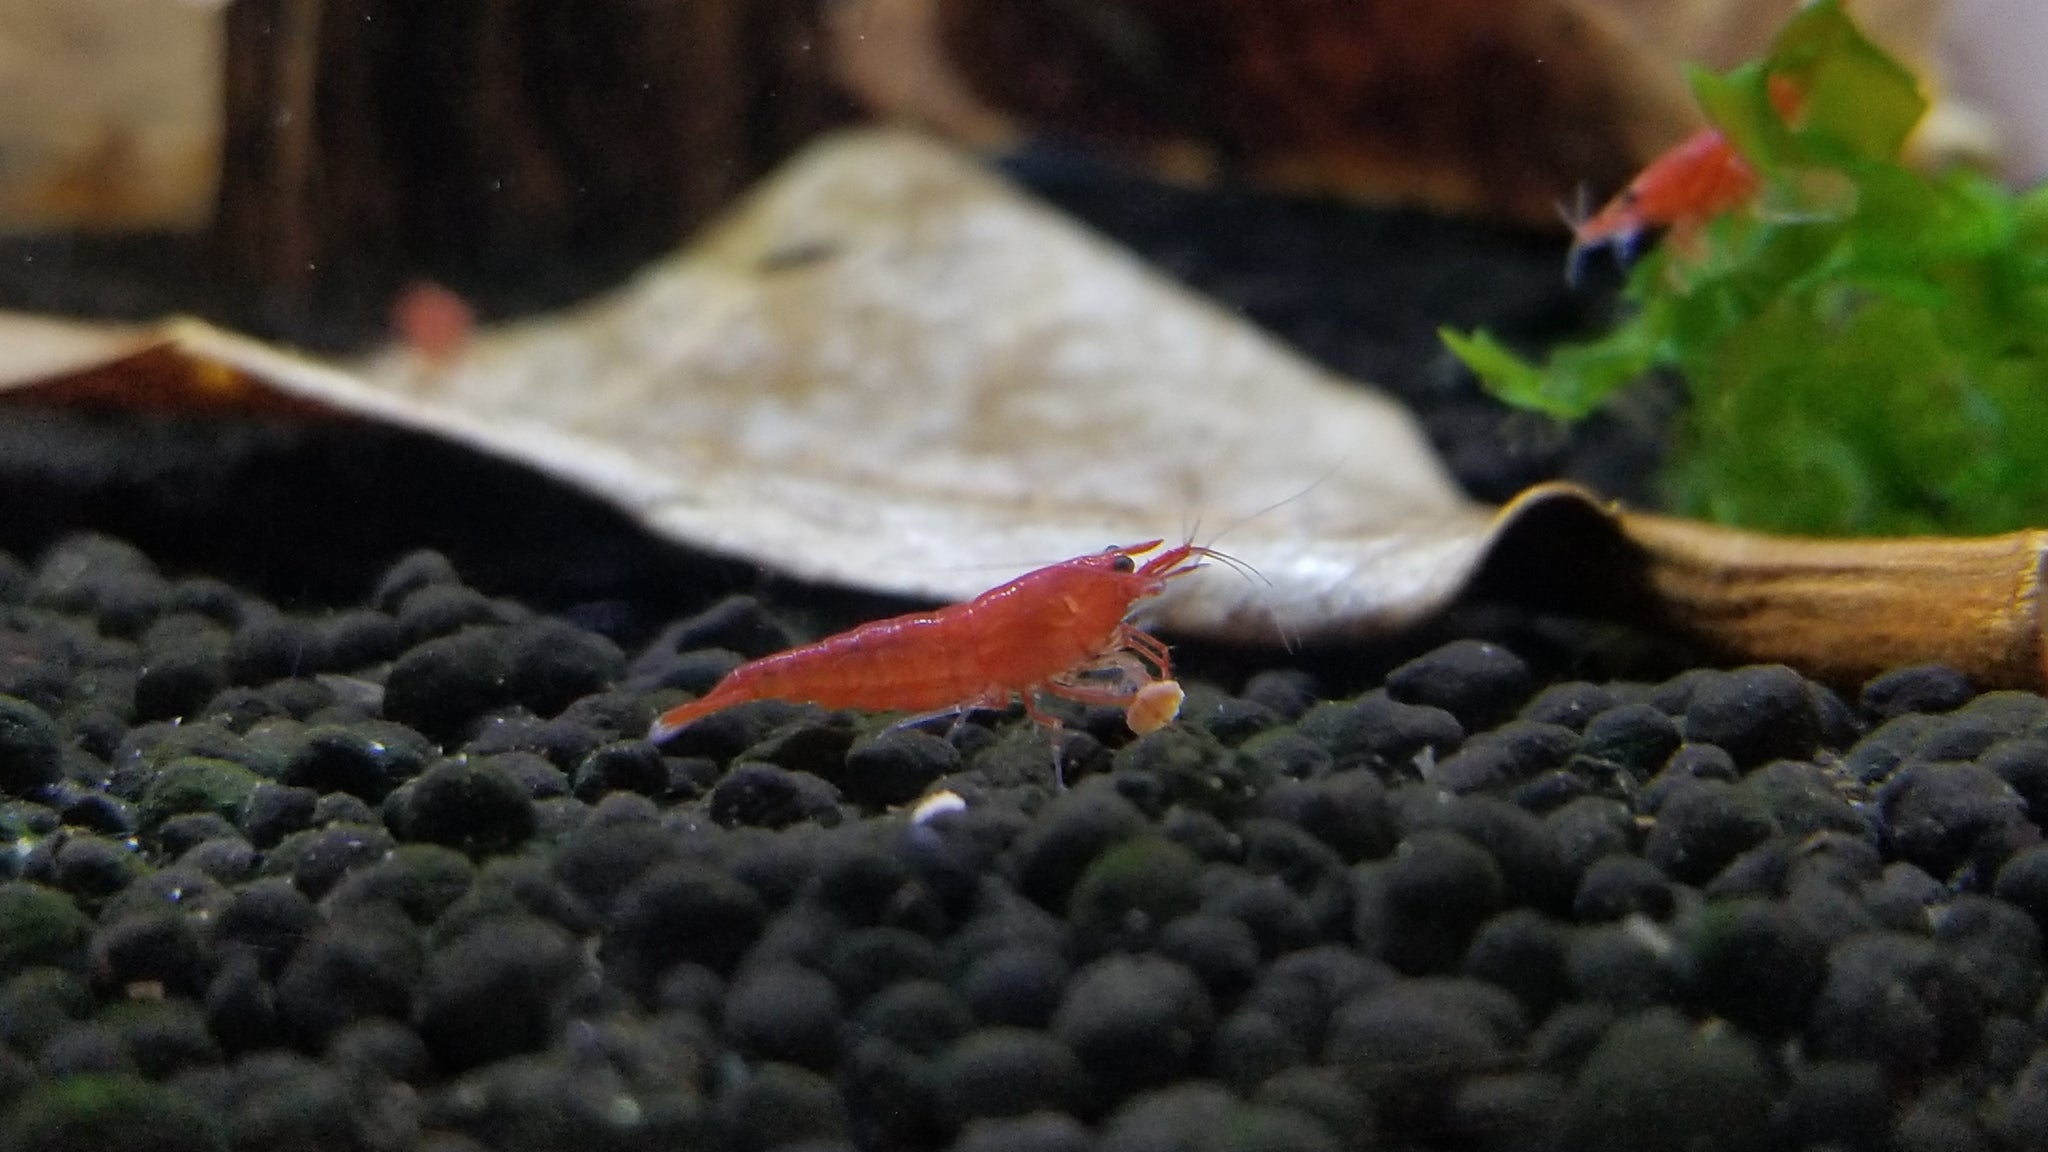 Cherry Red Shrimp (Neocaridina sp.)